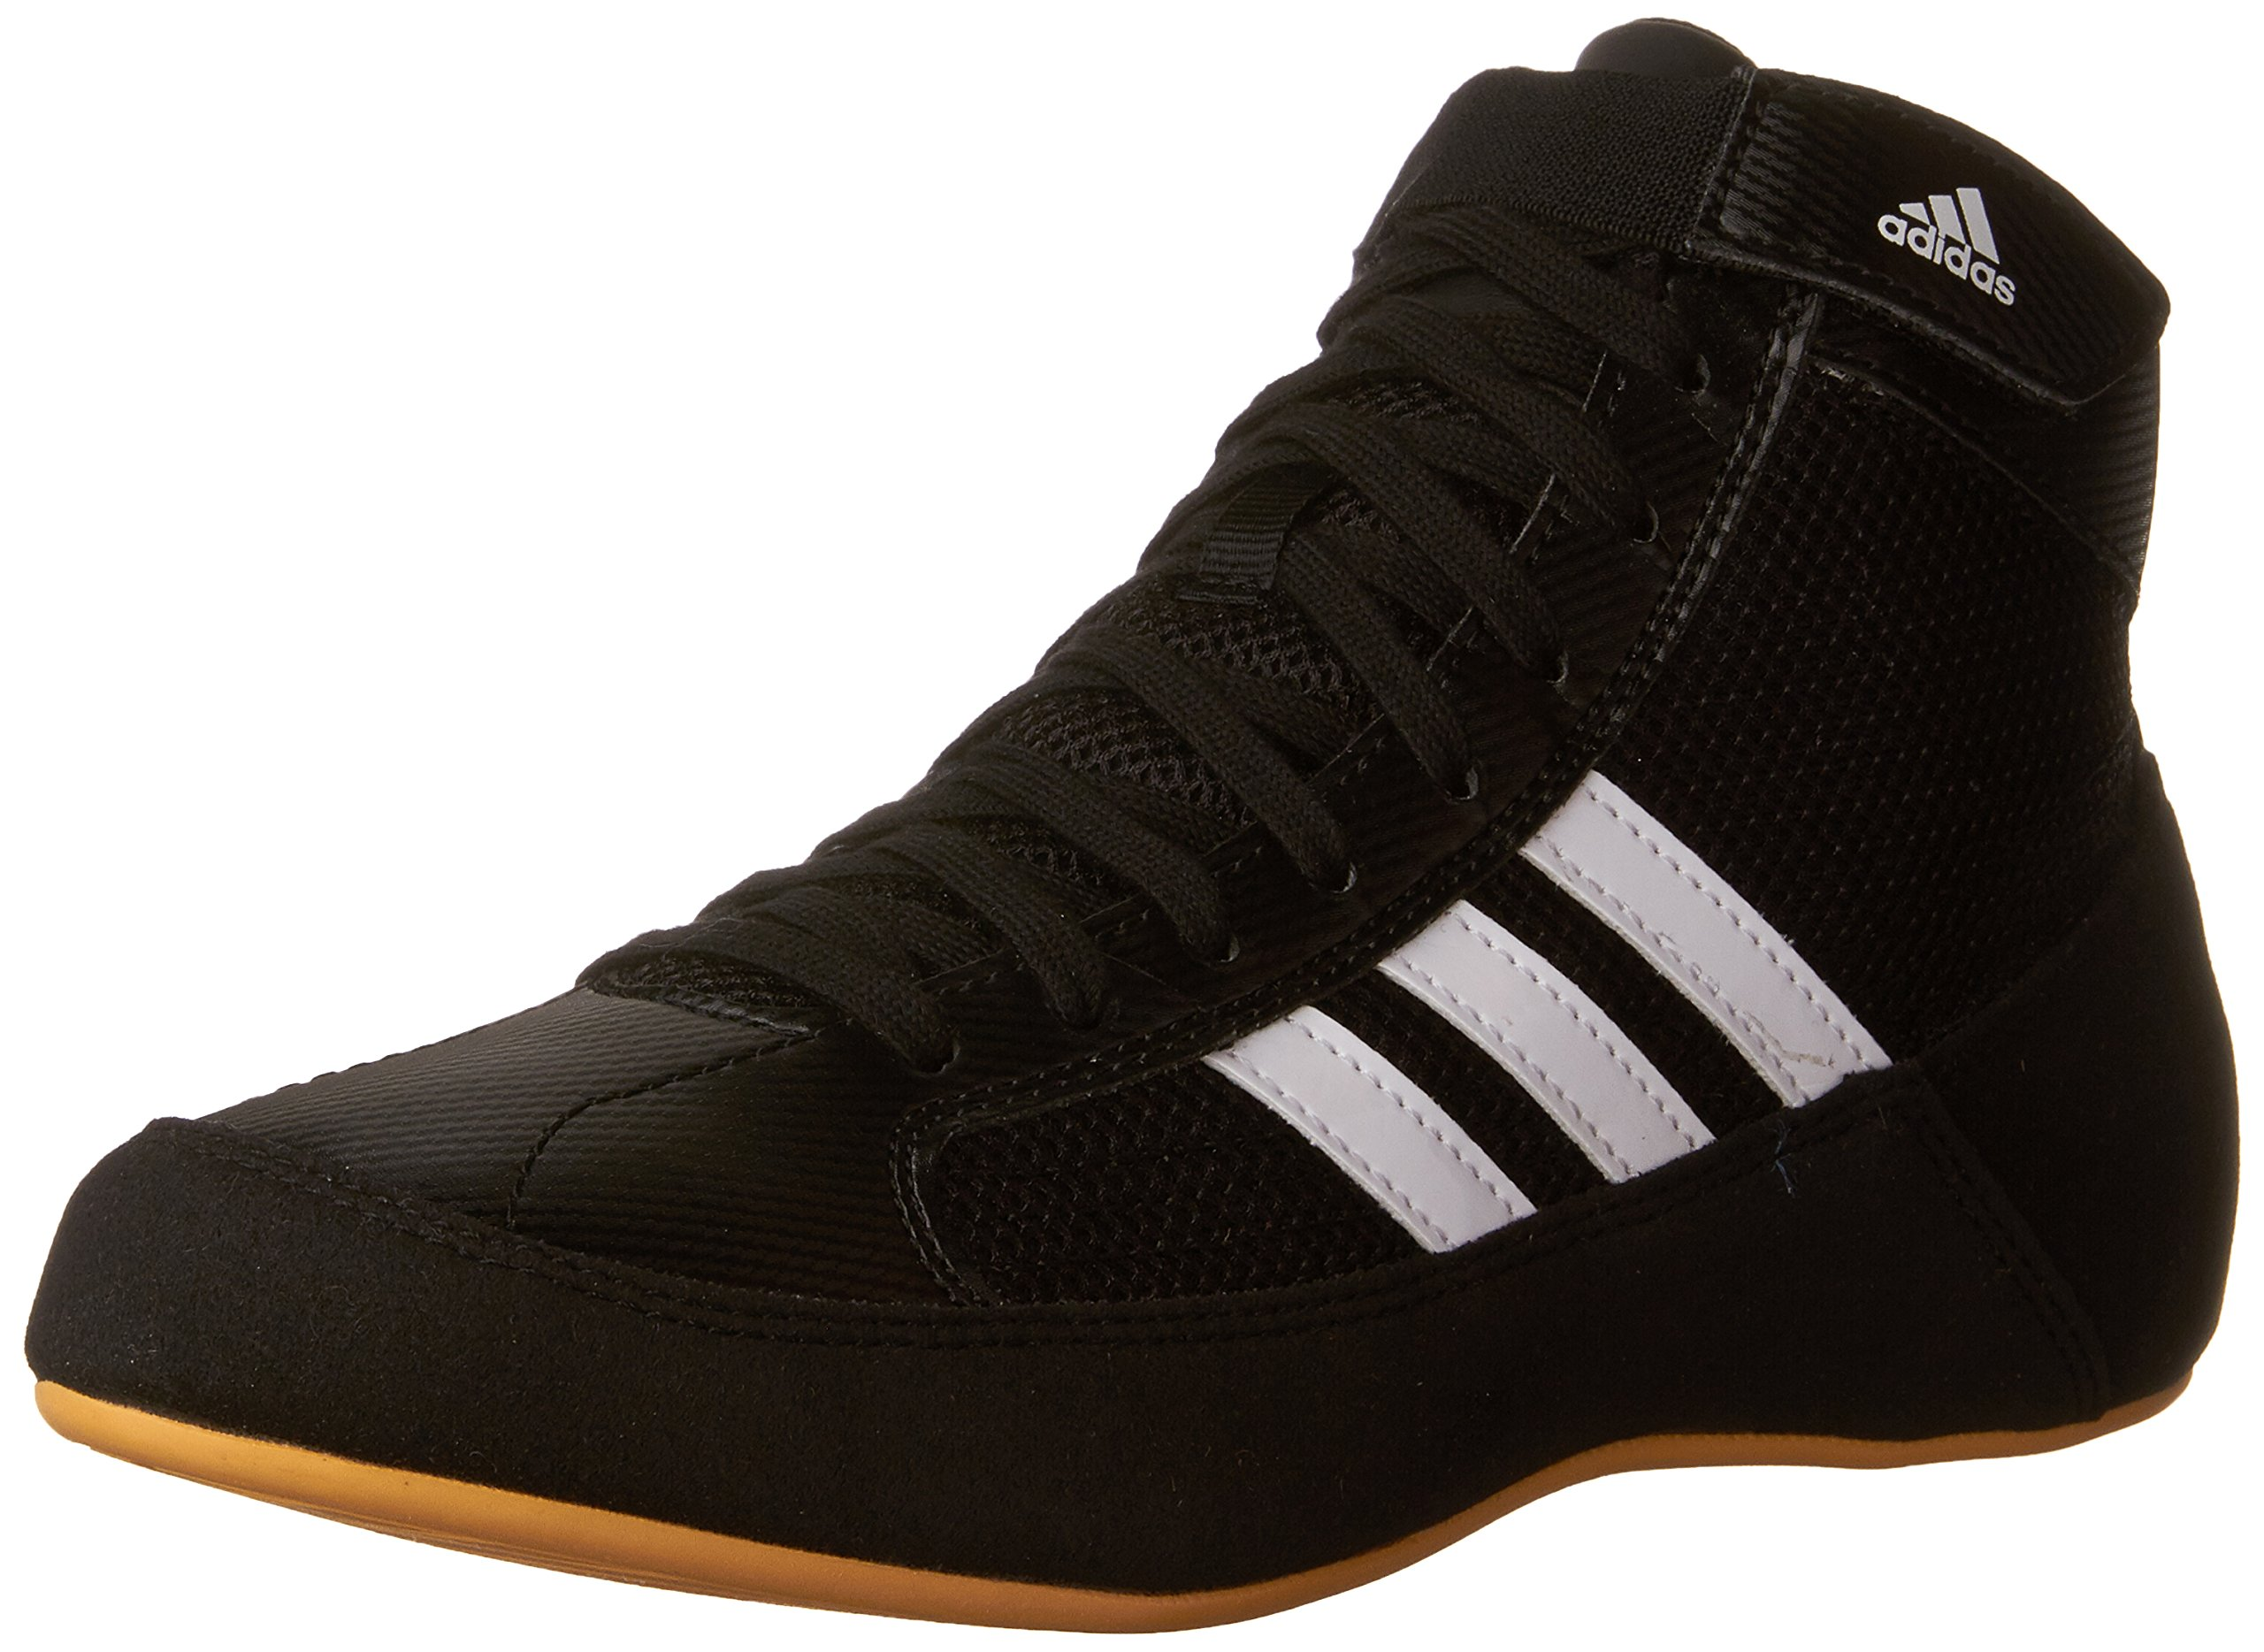 adidas Wrestling HVC Youth Laced Wrestling Shoe (Toddler/Little Kid/Big Kid),Black/White/Gum,10 M US Toddler